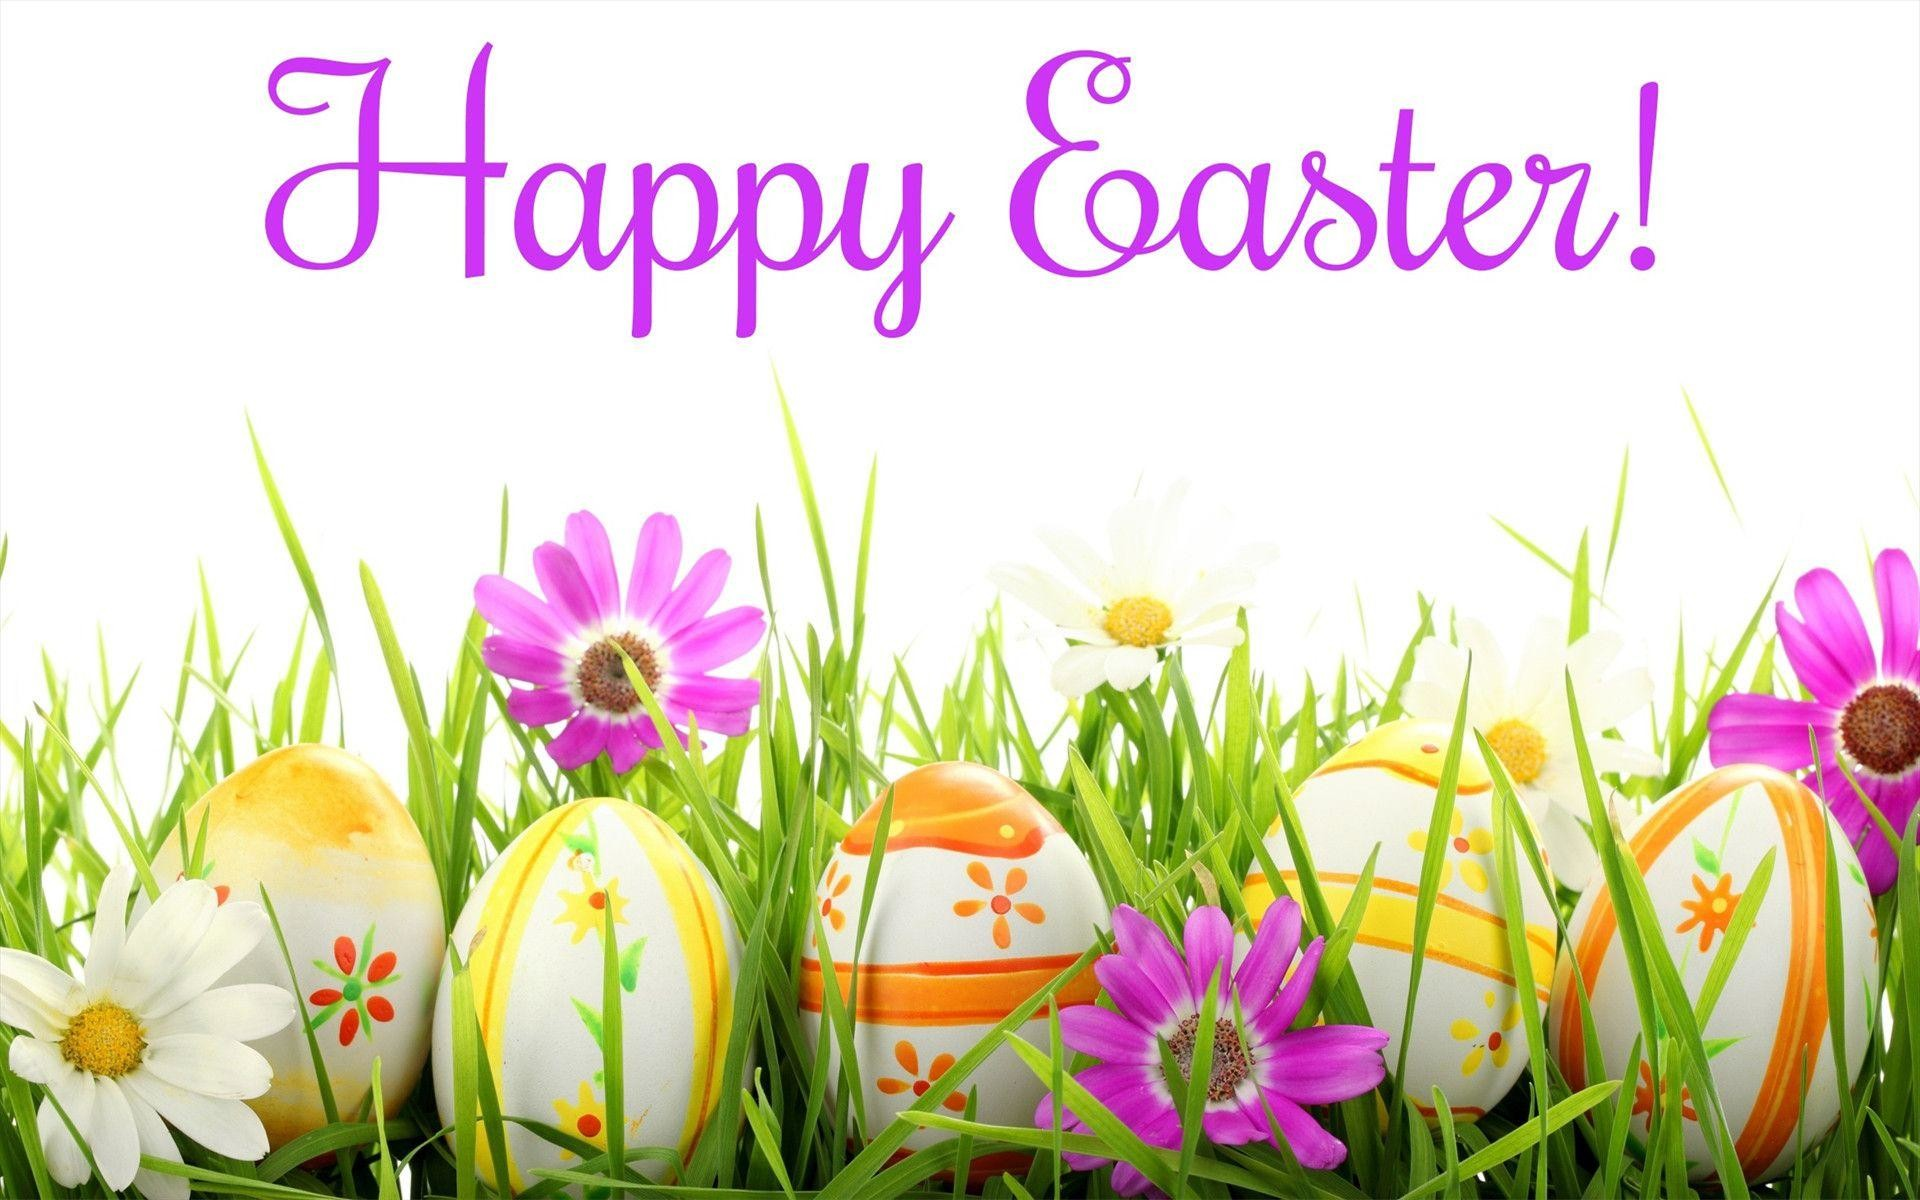 Happy Easter Wallpaper Pictures 63 images 1920x1200